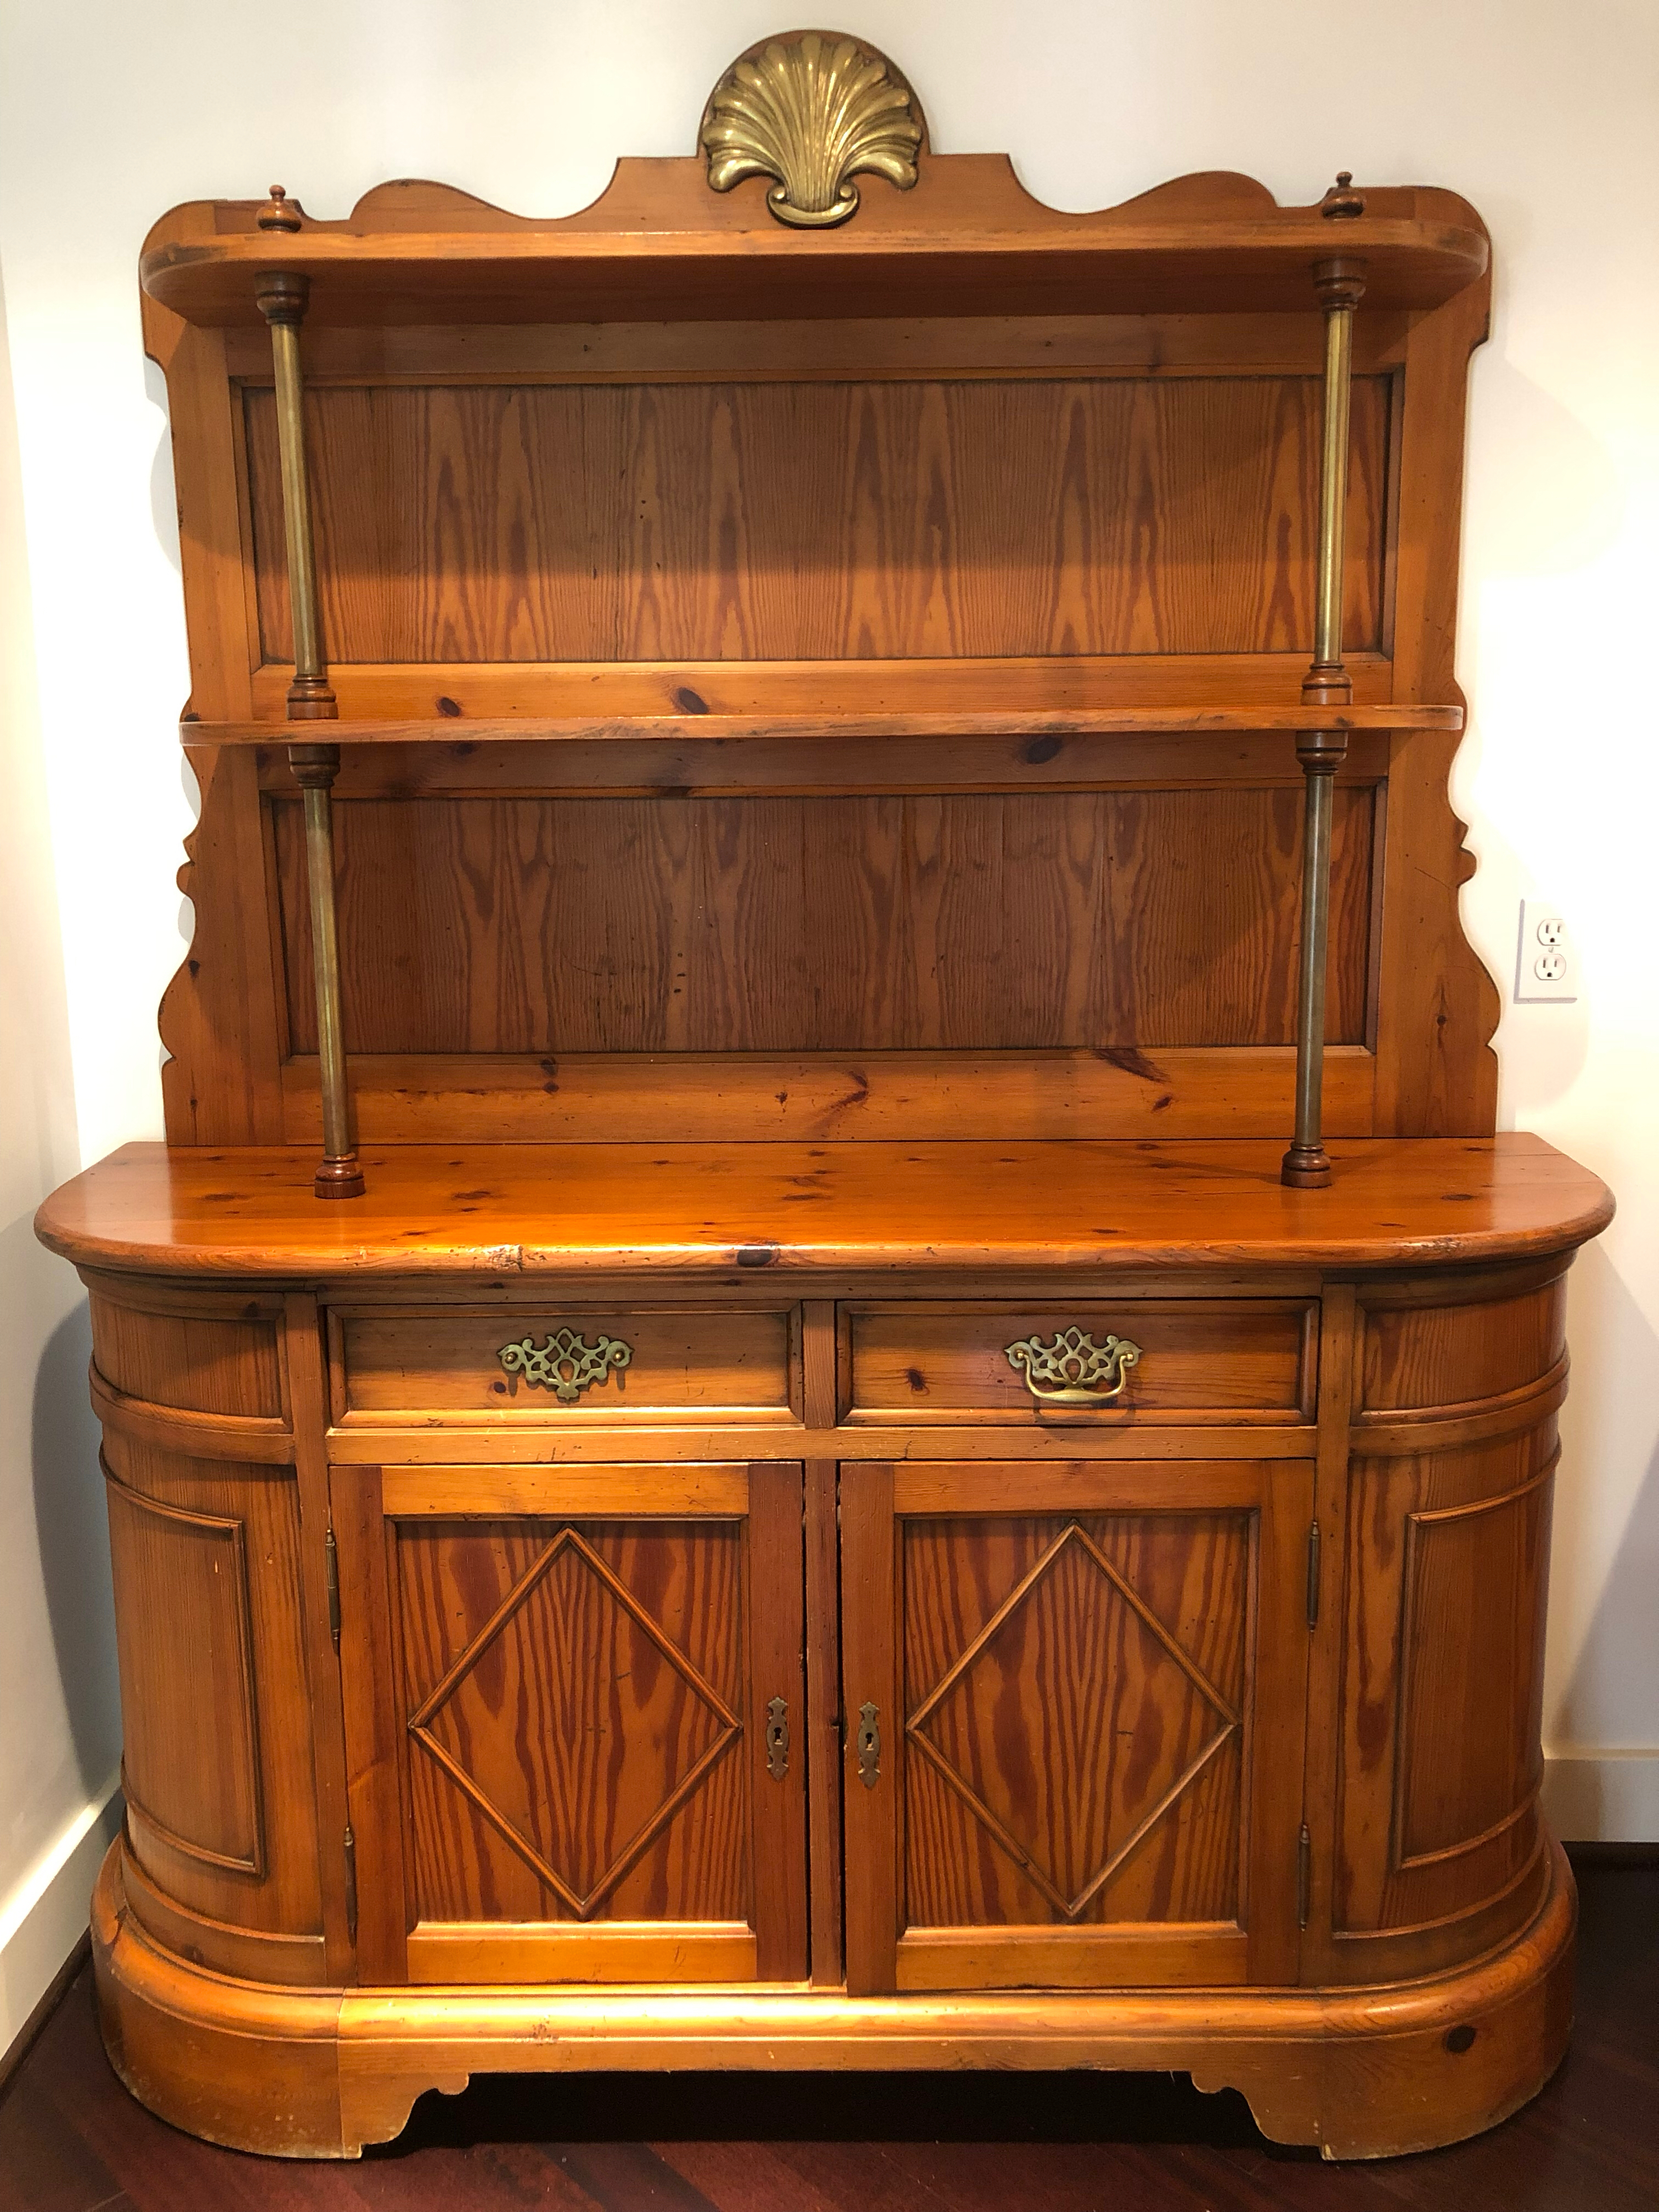 Display-Cabinet_193918A.jpg